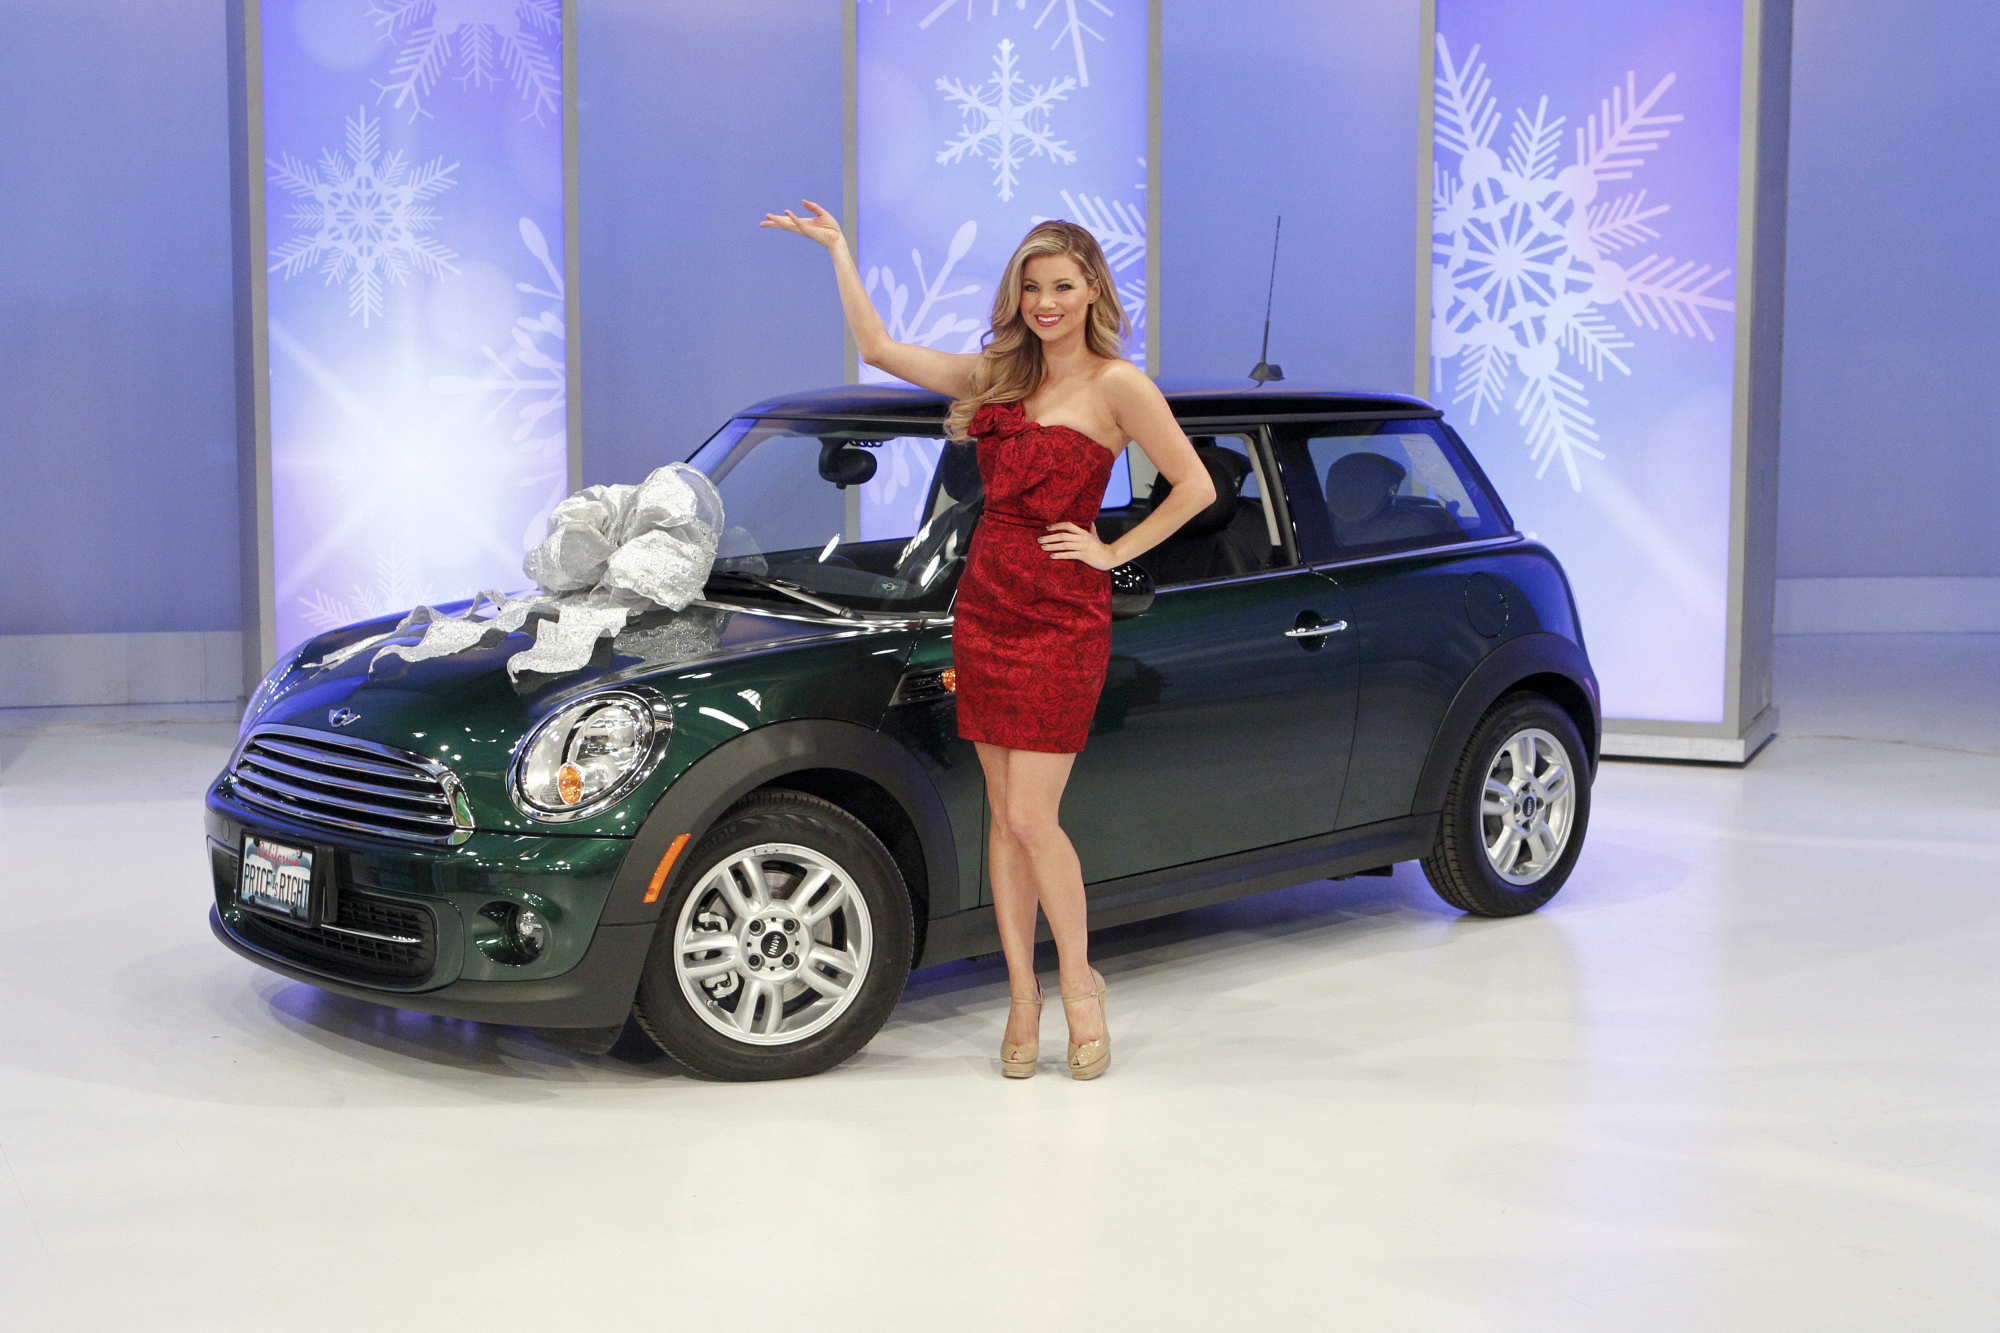 Amber with Mini Cooper